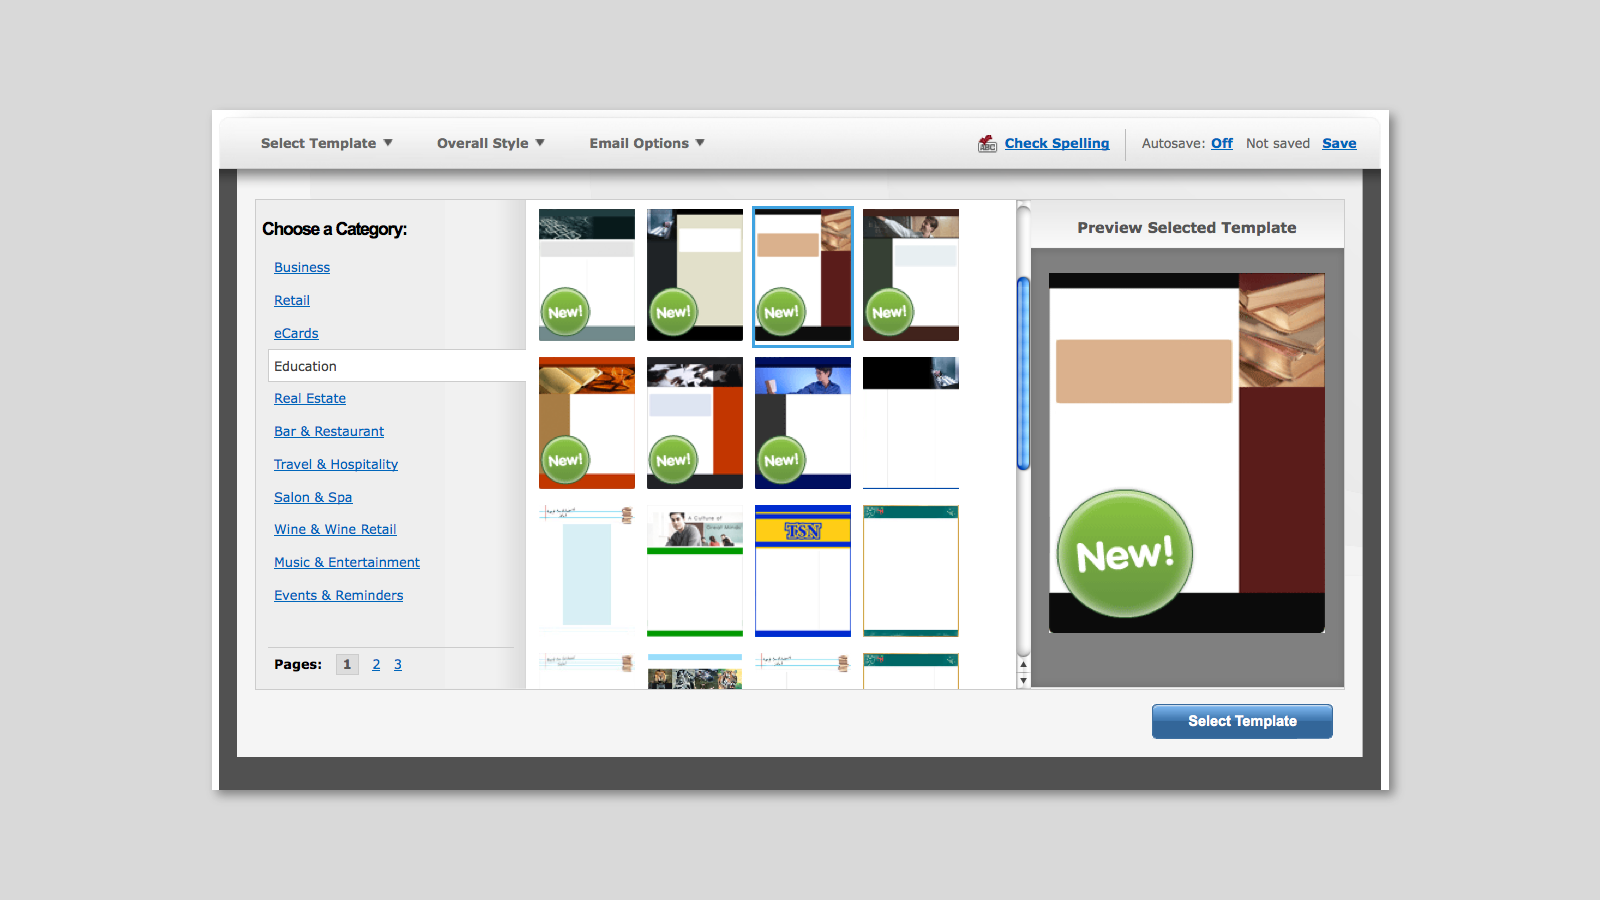 Shopify verticalresponse integration - different email templates